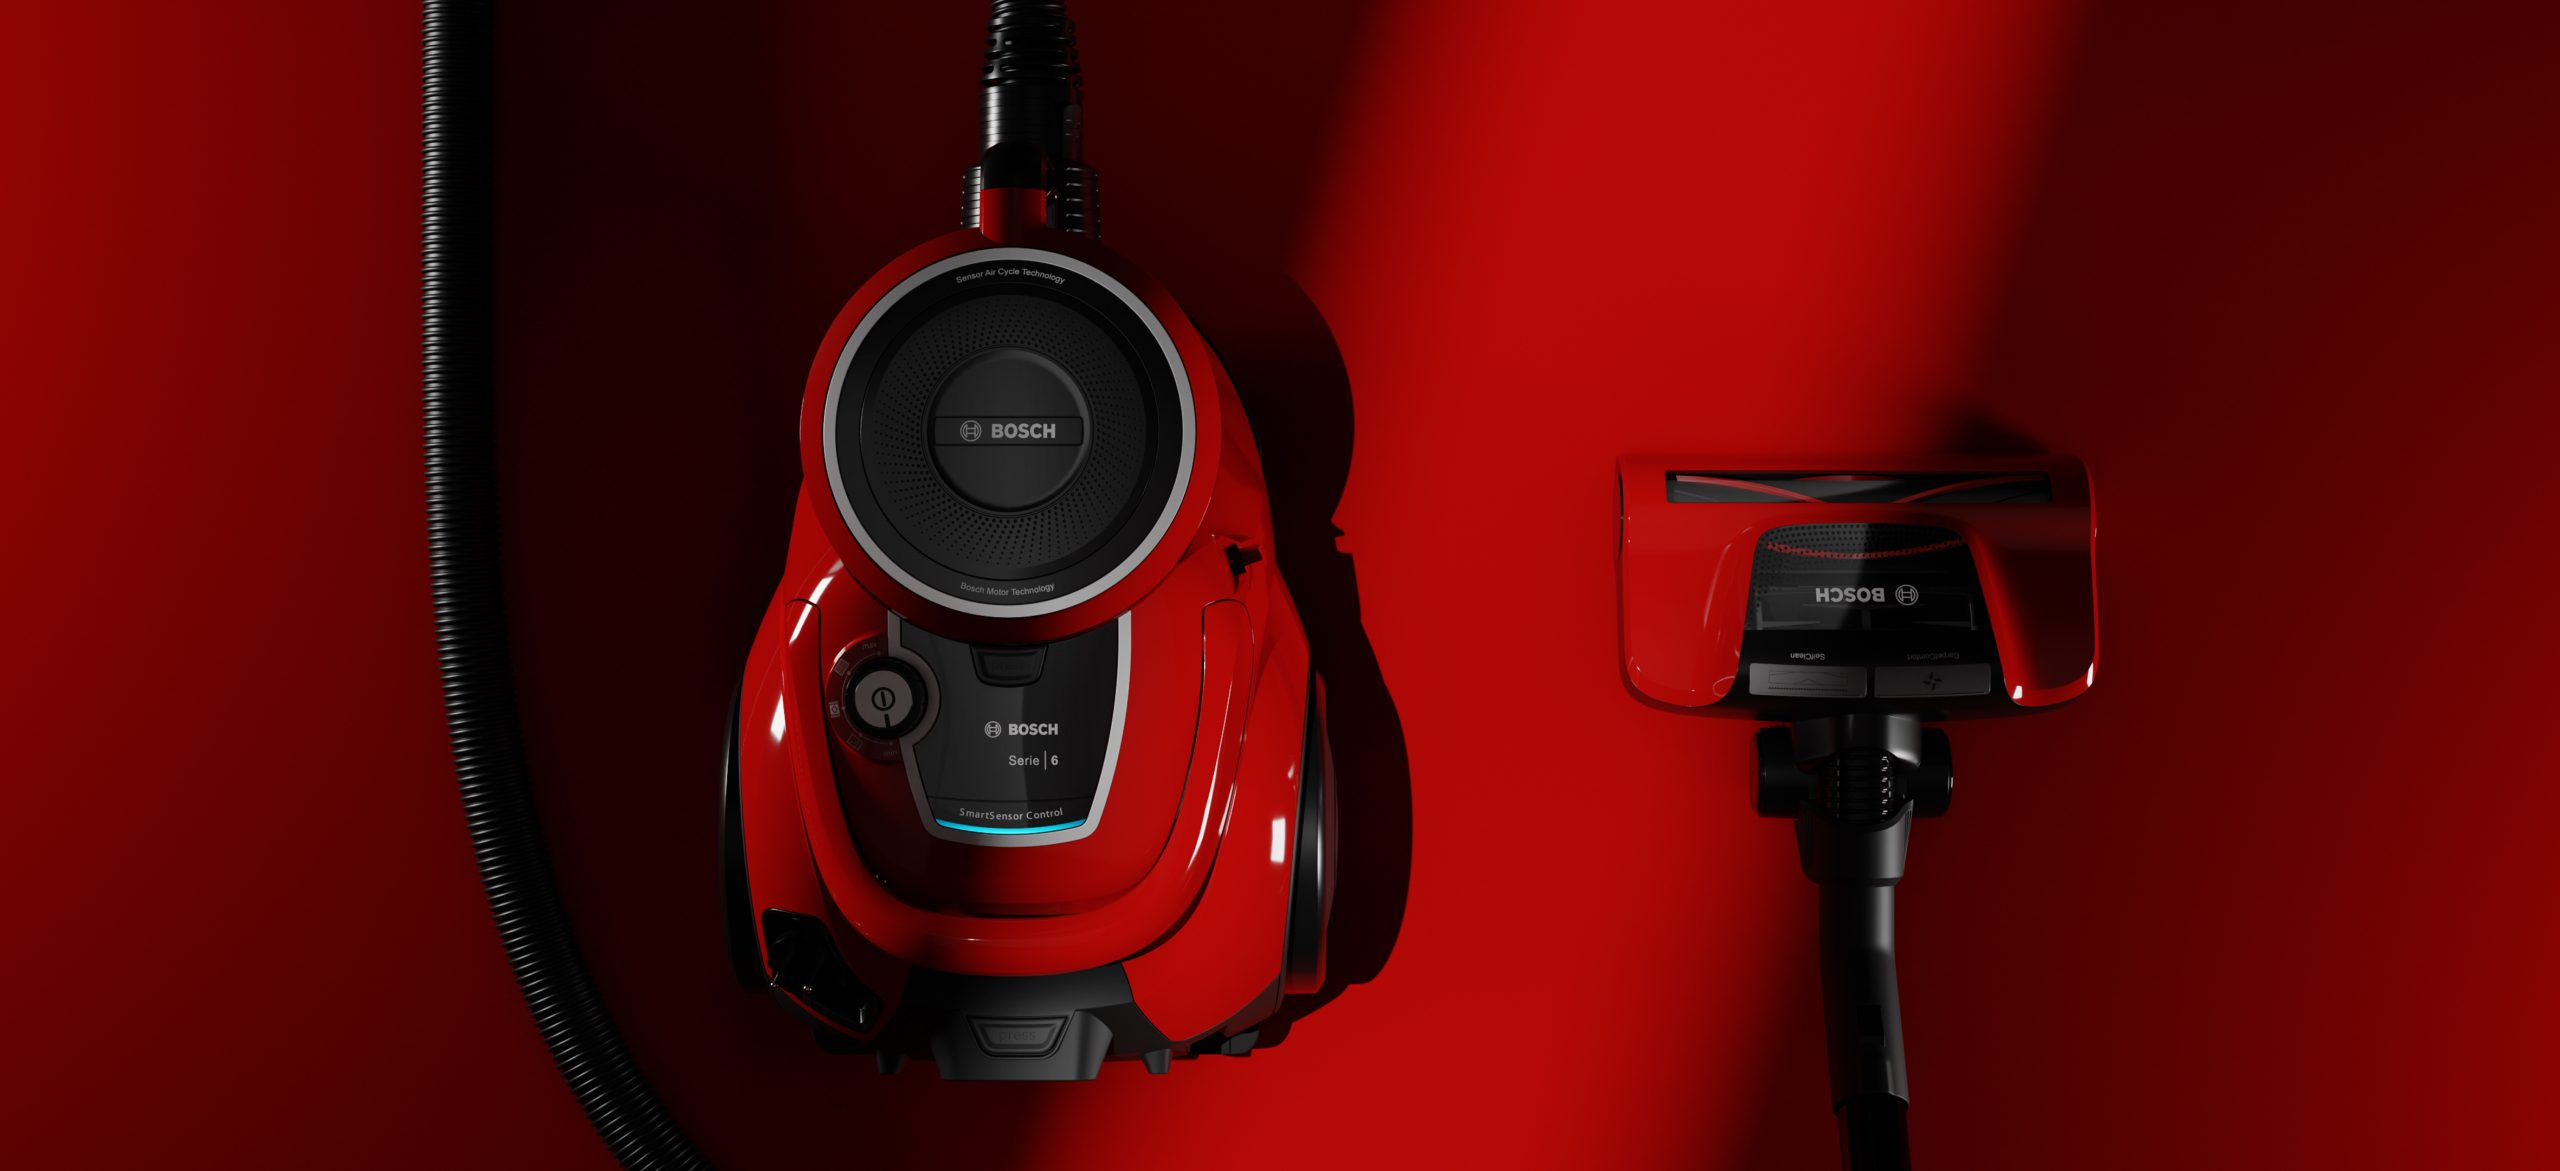 red bosch vacuum cleaner on red ground in dramatic light scene